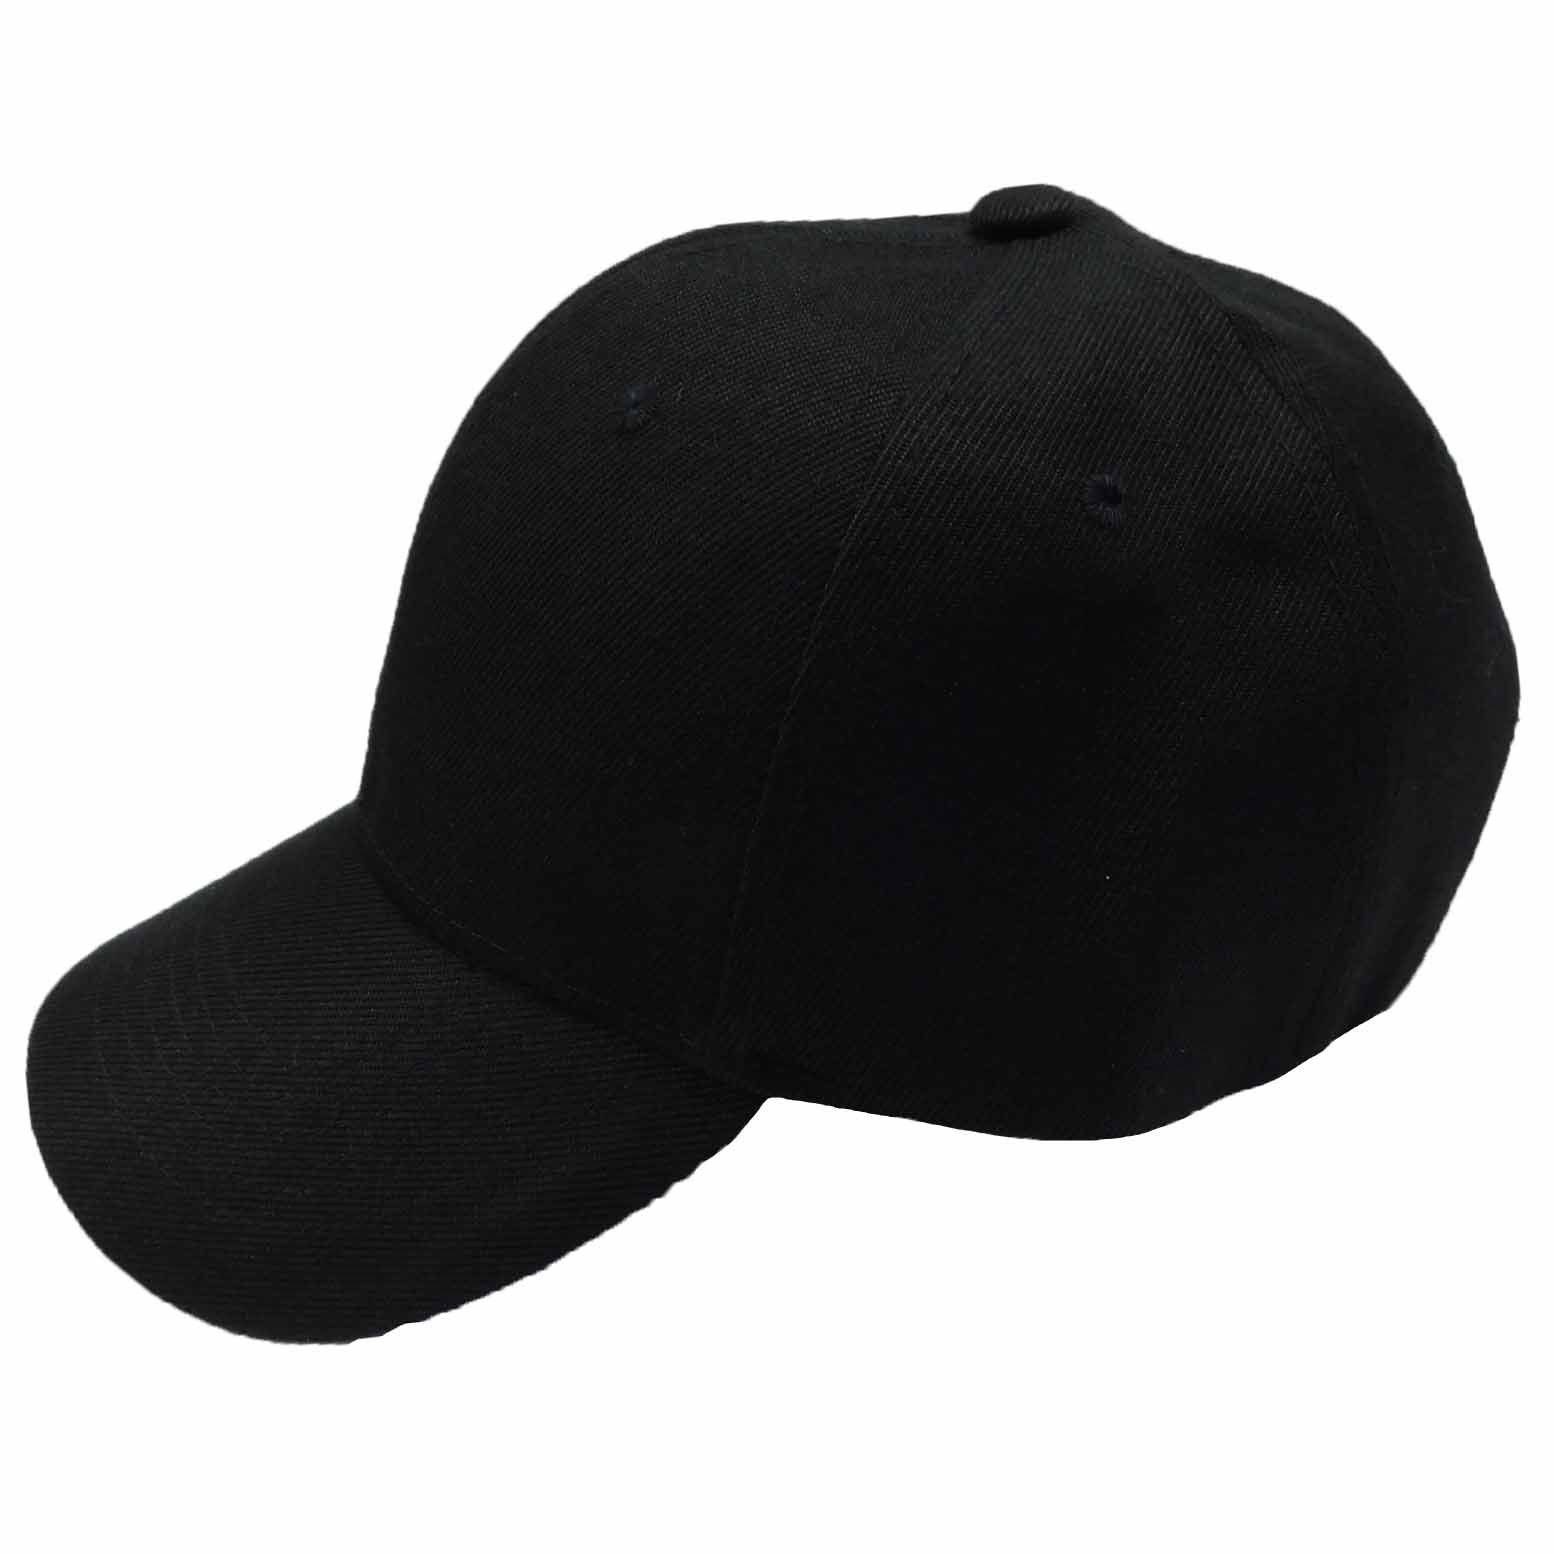 Baseball Cap with Stitched Bill